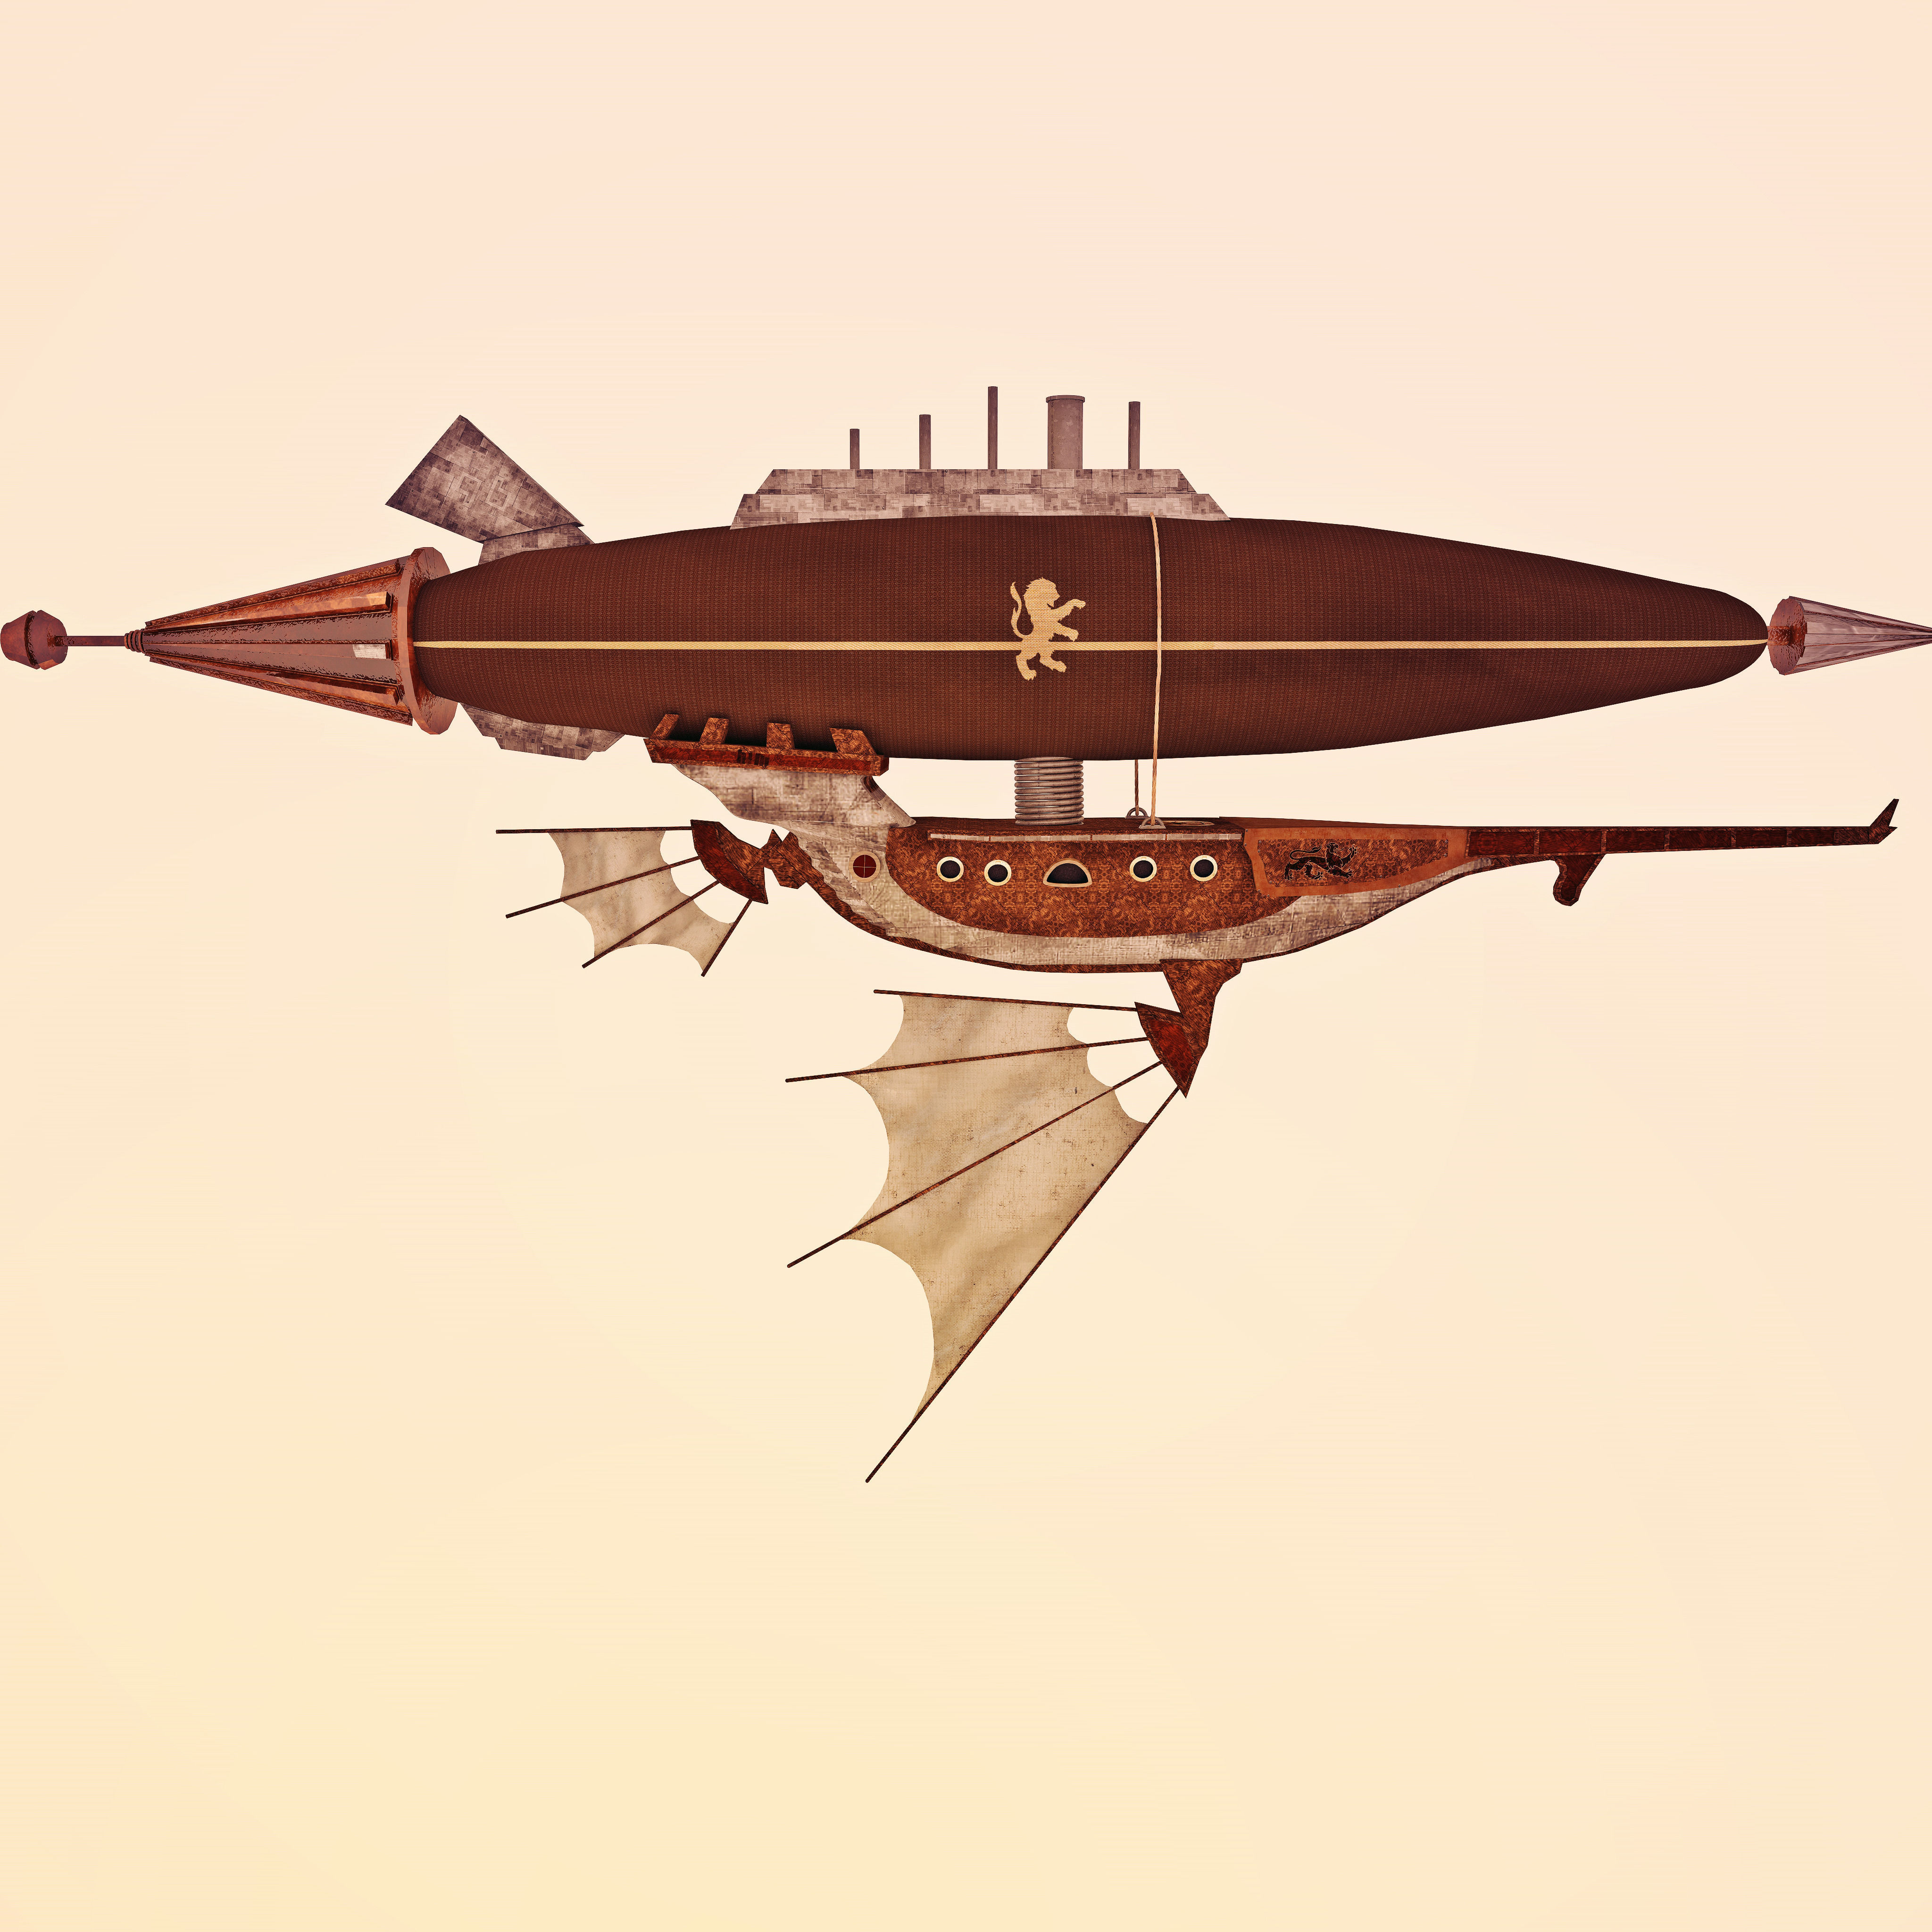 Best Buy Military Discount >> 3D model Air ship steampunk | CGTrader